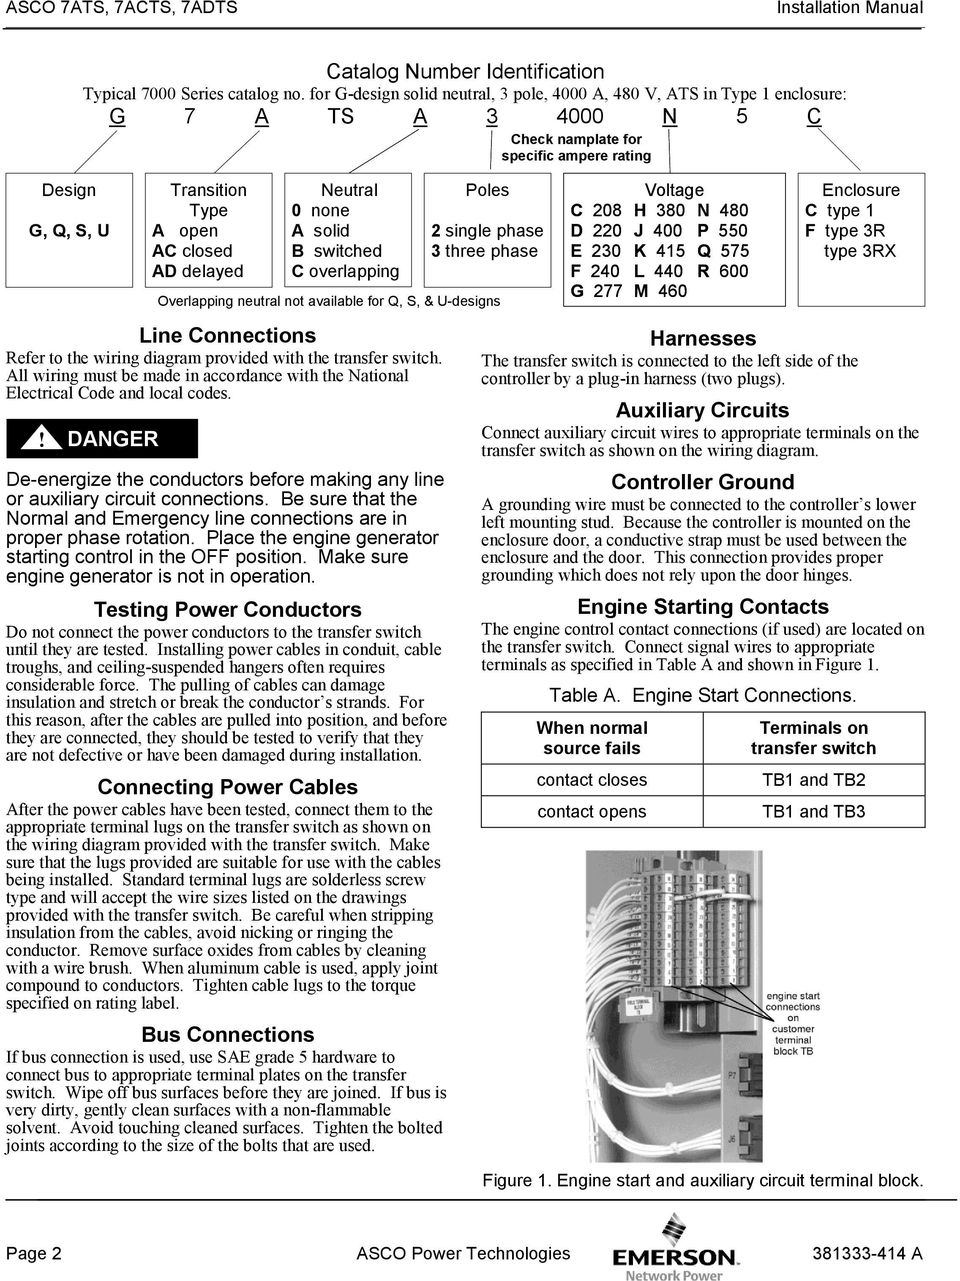 Installation Manual Series 7ats 7acts 7adts G Q S U Design Asco Limit Switch Wiring Diagram Connections Refer To The Provided With Transfer All Must Be